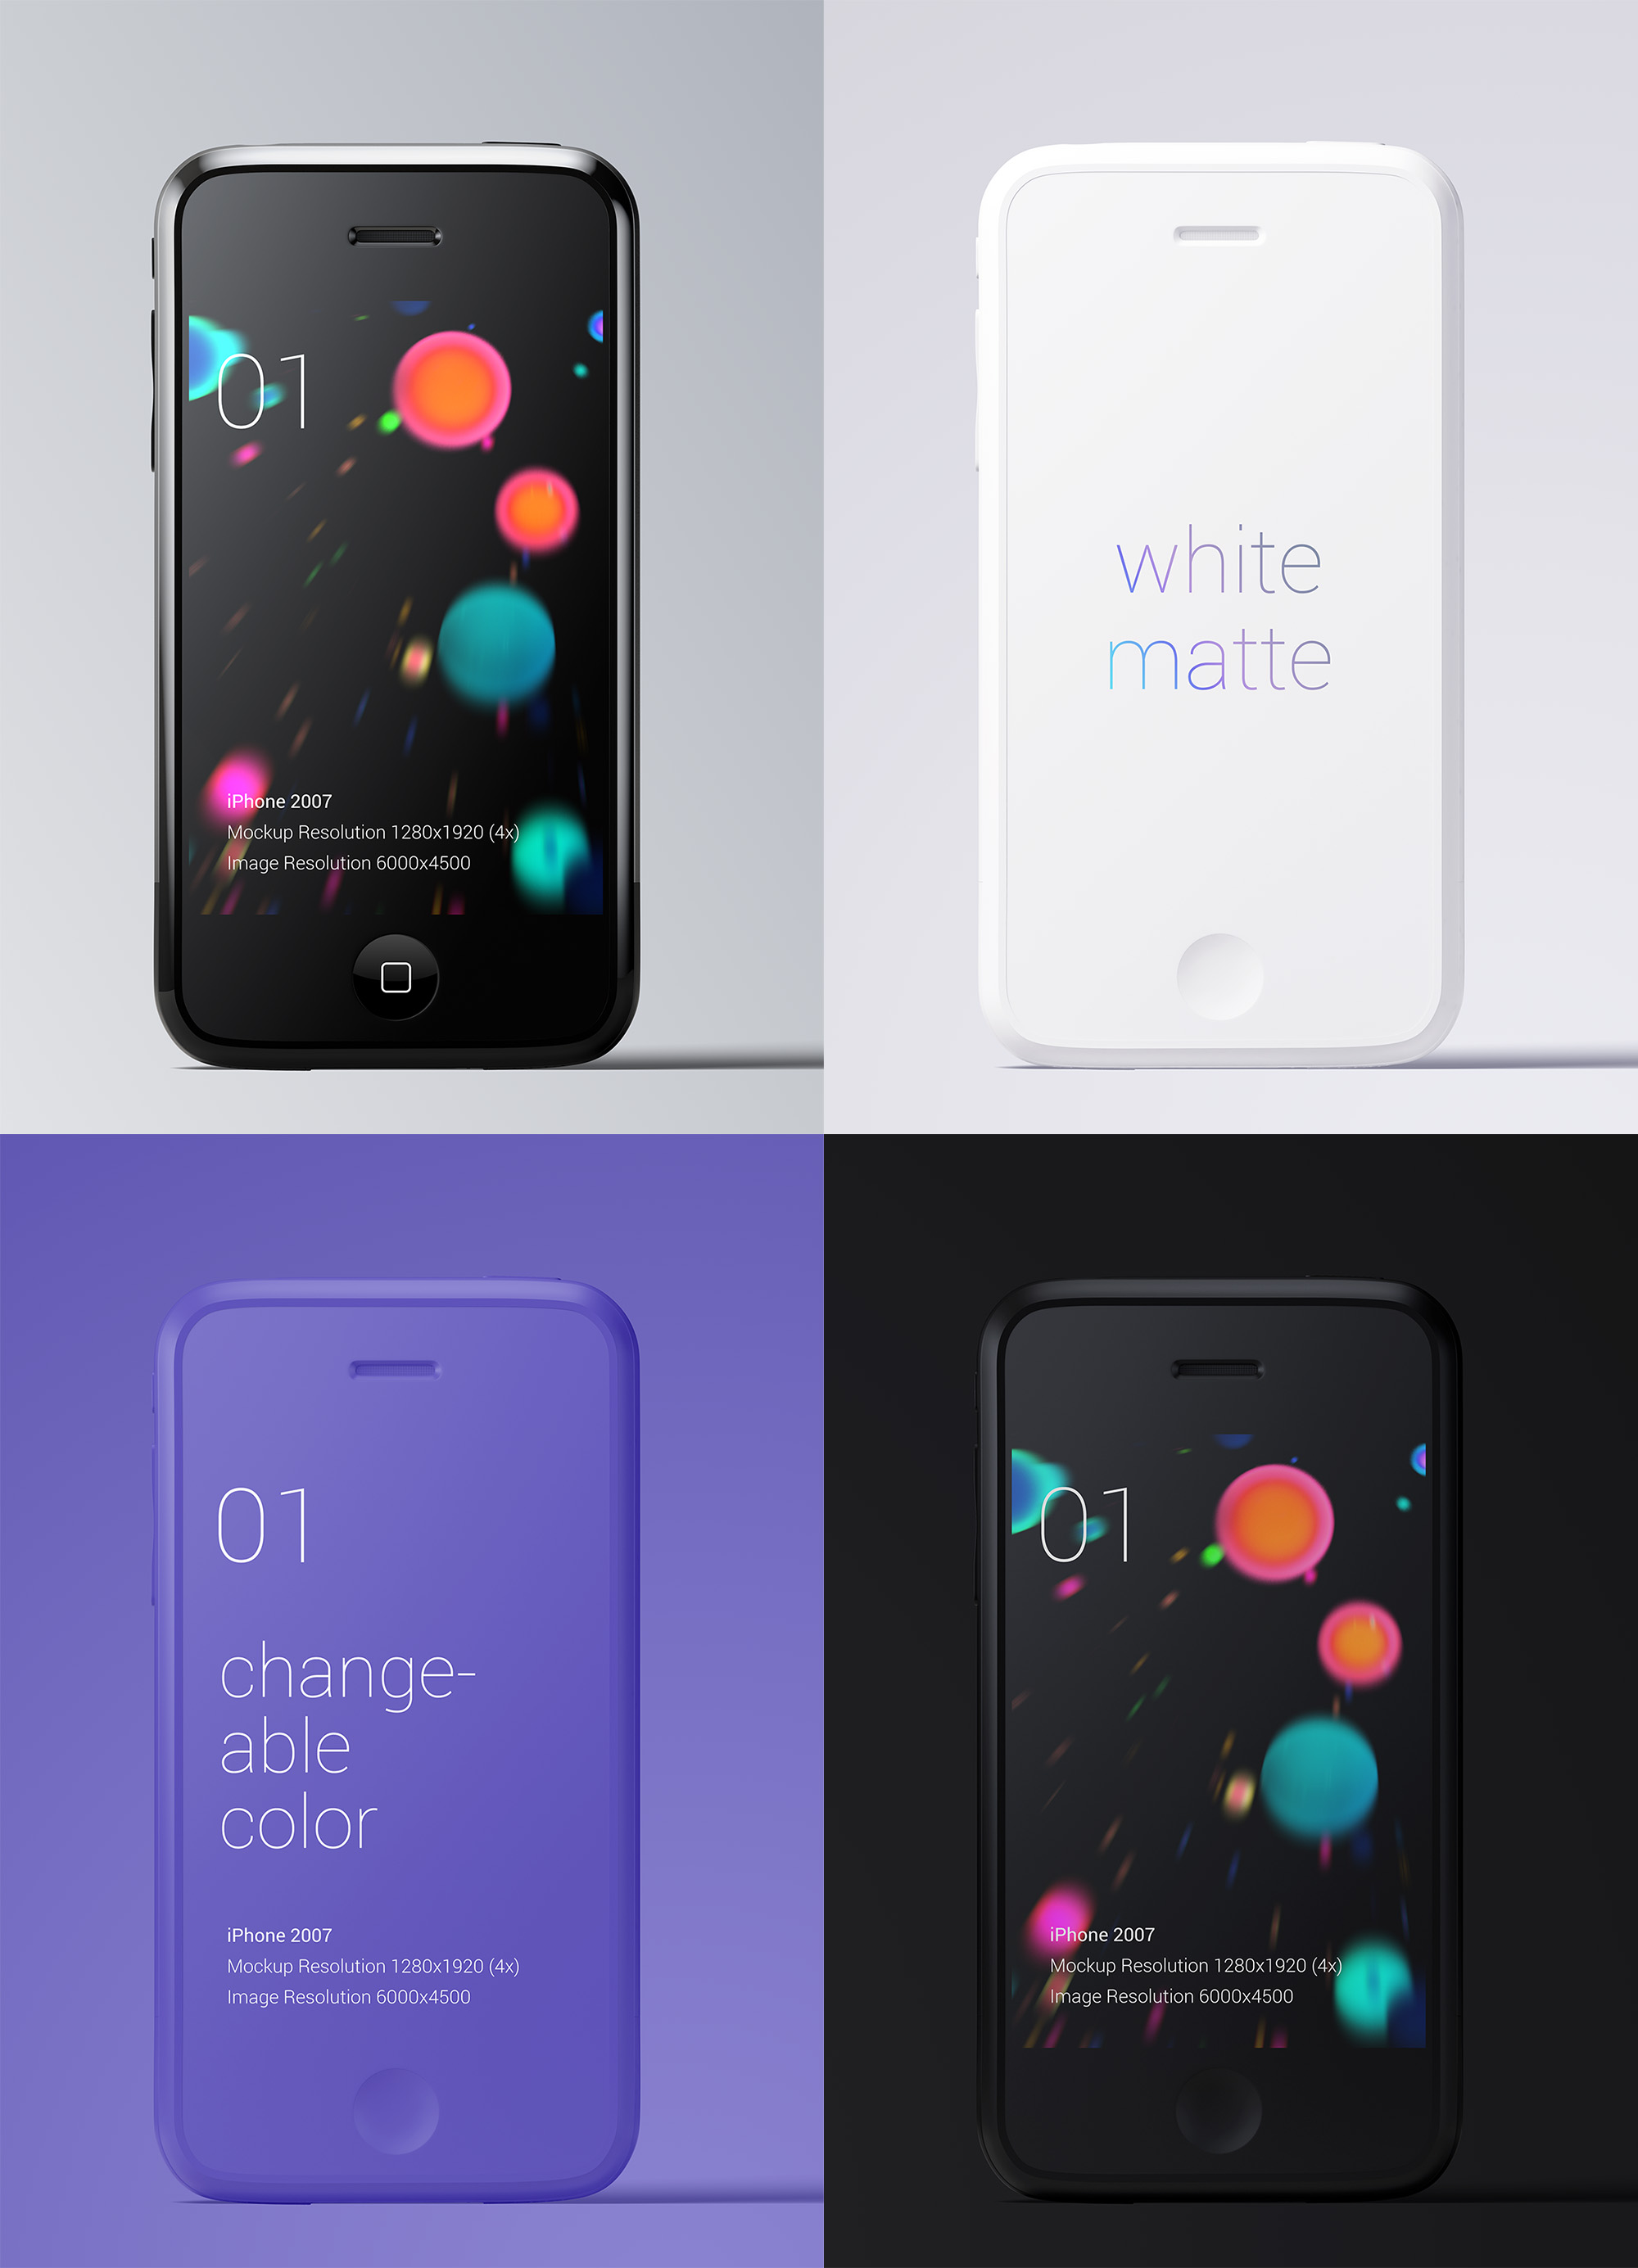 iphone first generation iphone 1st generation mockup freebies for designers and 3118